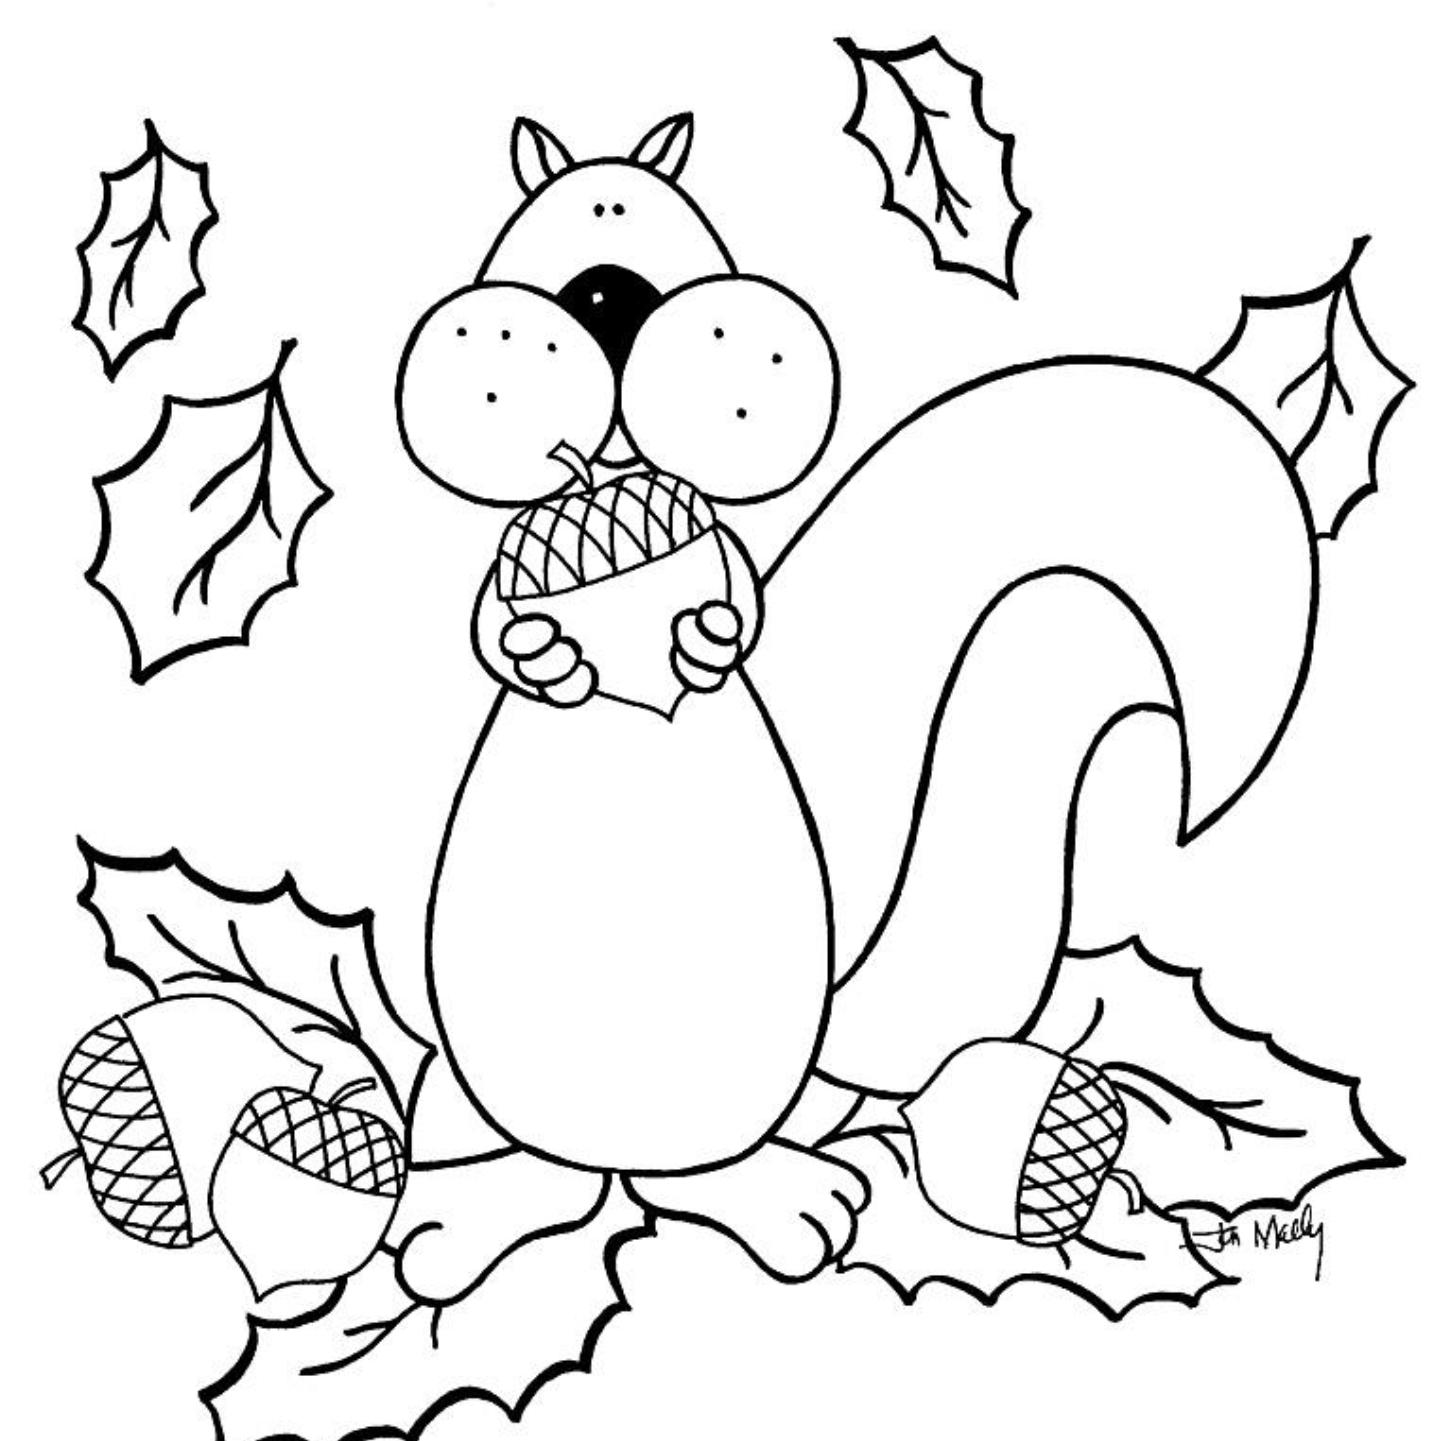 It's just an image of Shocking Fall Leaf Coloring Pages